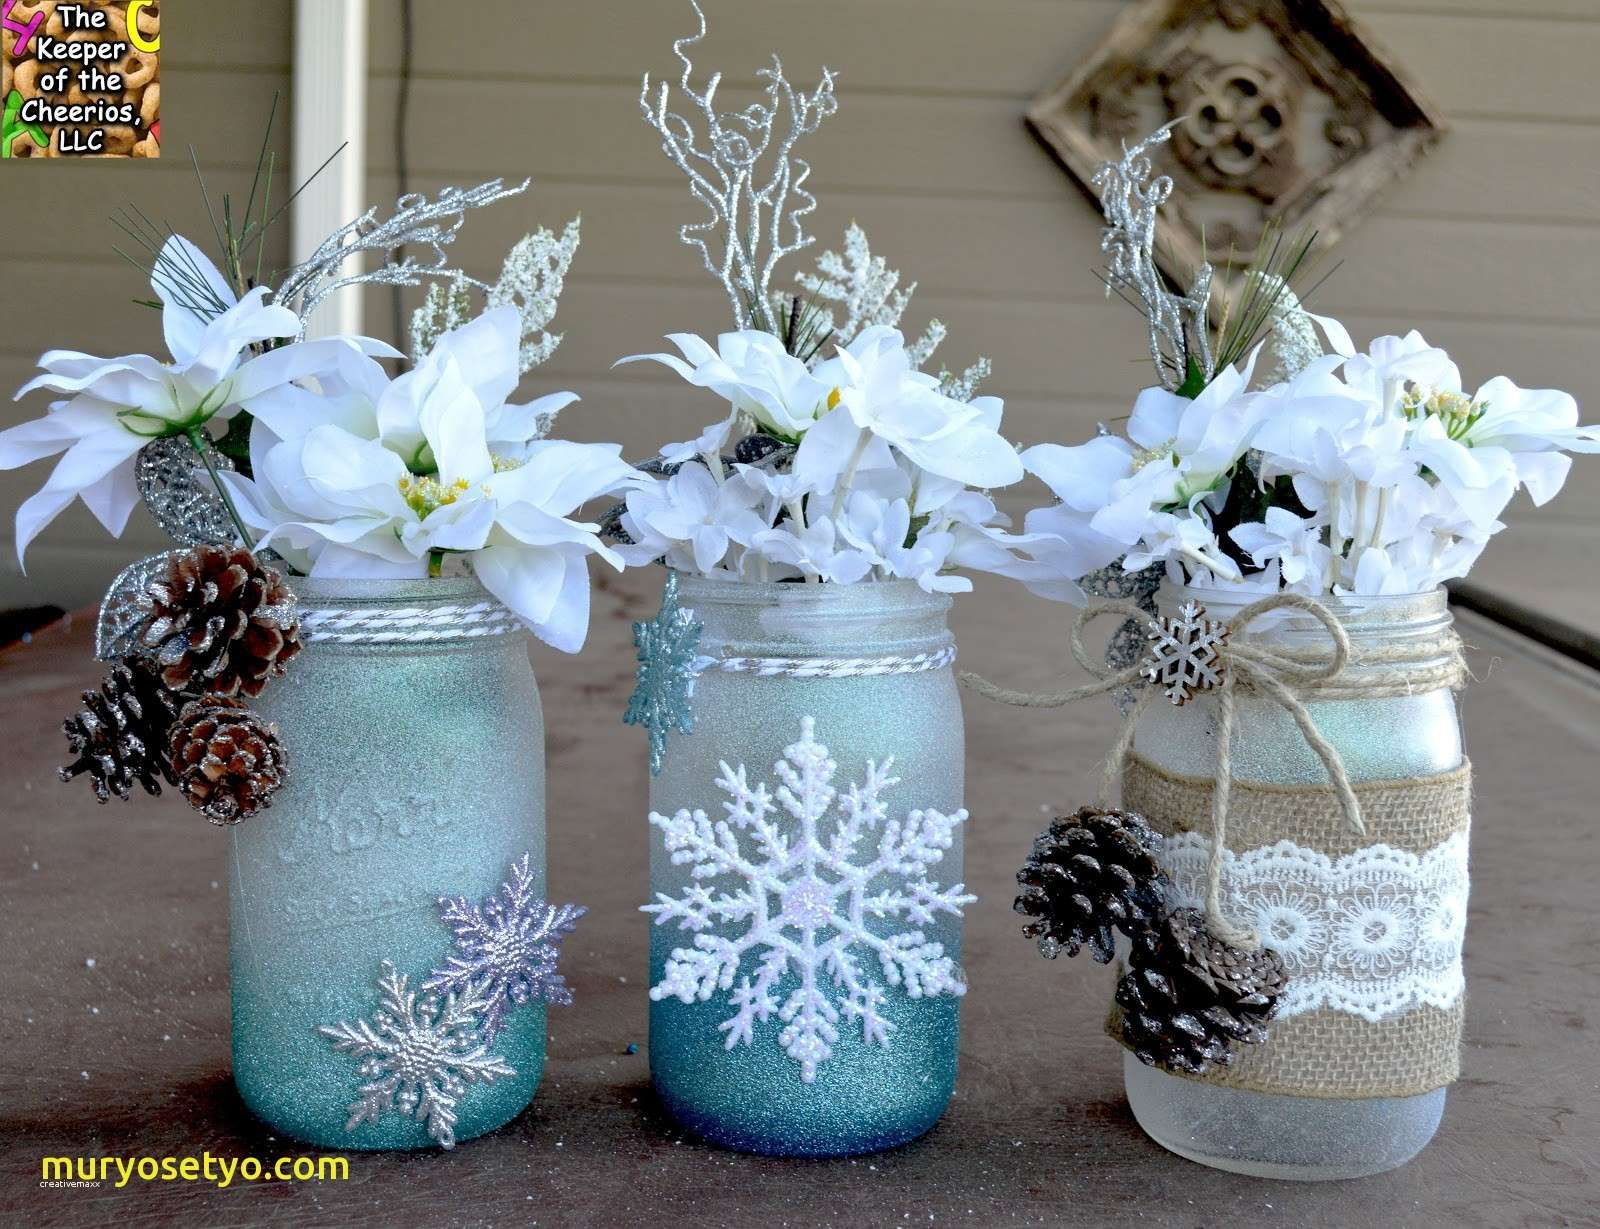 Easy Winter Crafts For Adults Awesome Fresh January Craft Christmas Jars Easy Winter Crafts Mason Jar Decorations